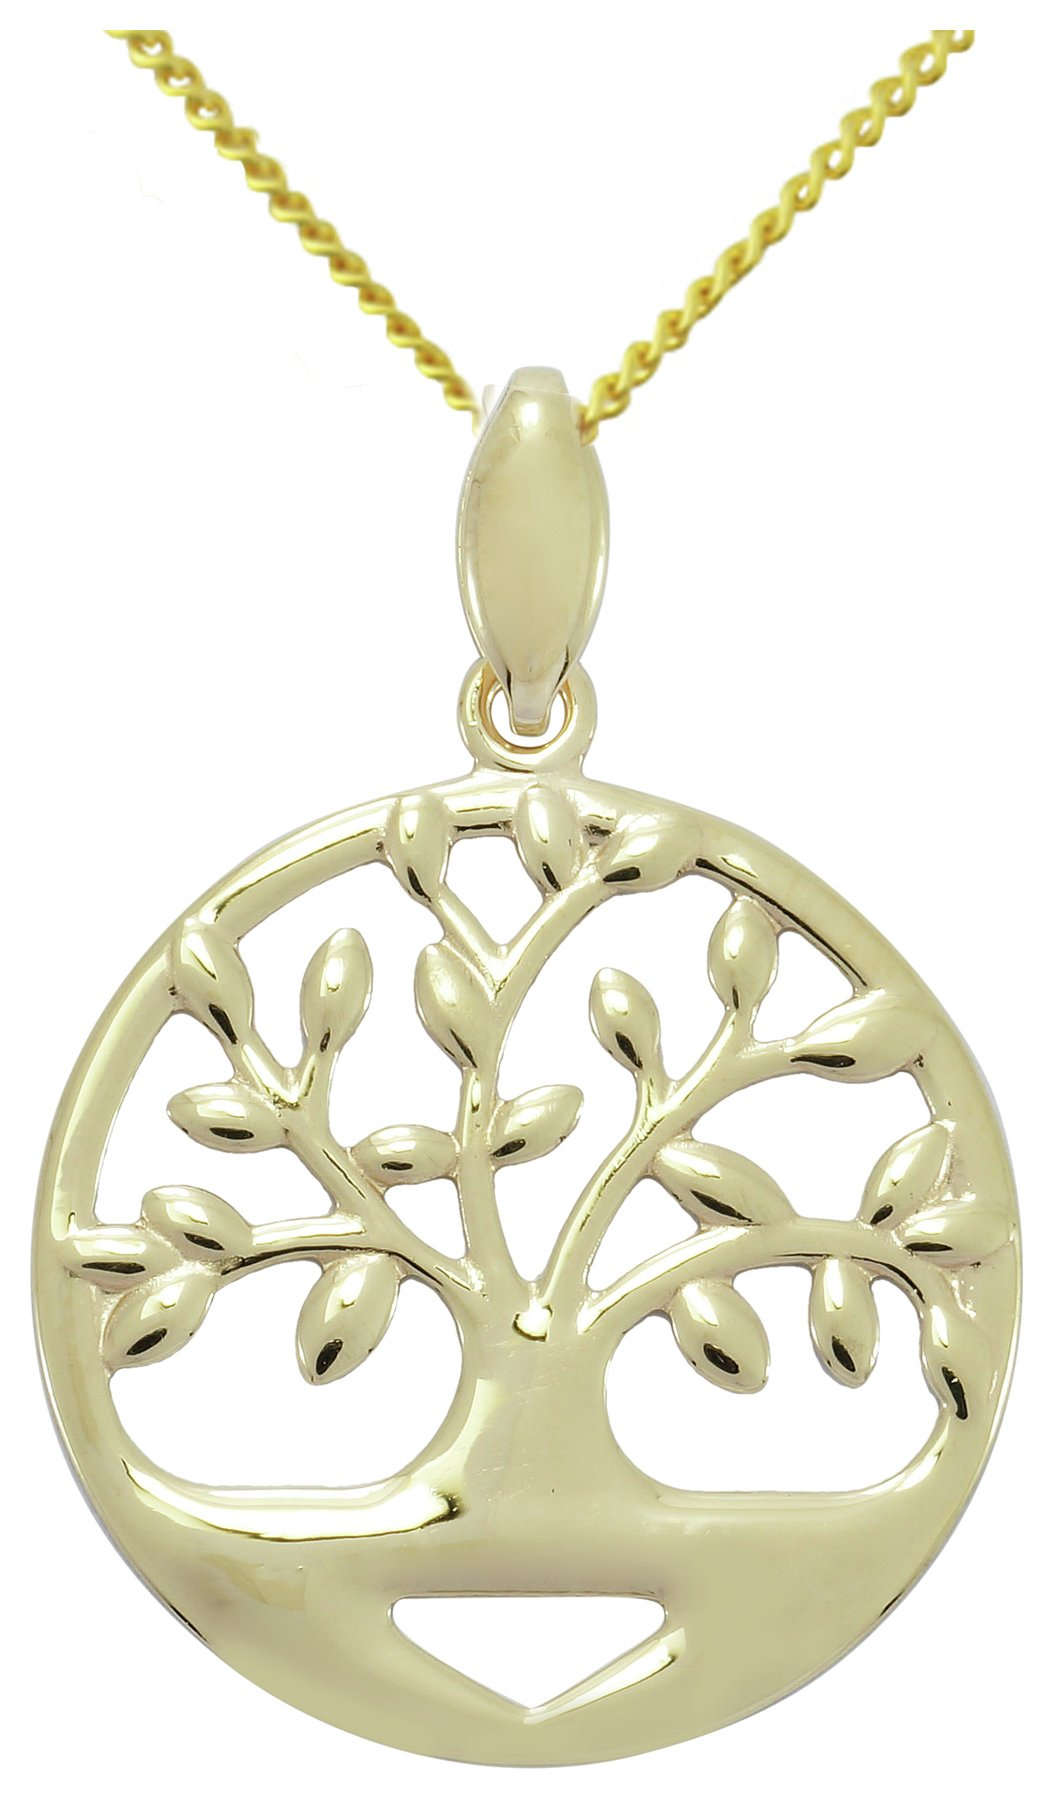 Image of 9 Carat Gold - Family Tree Circle Pendant.